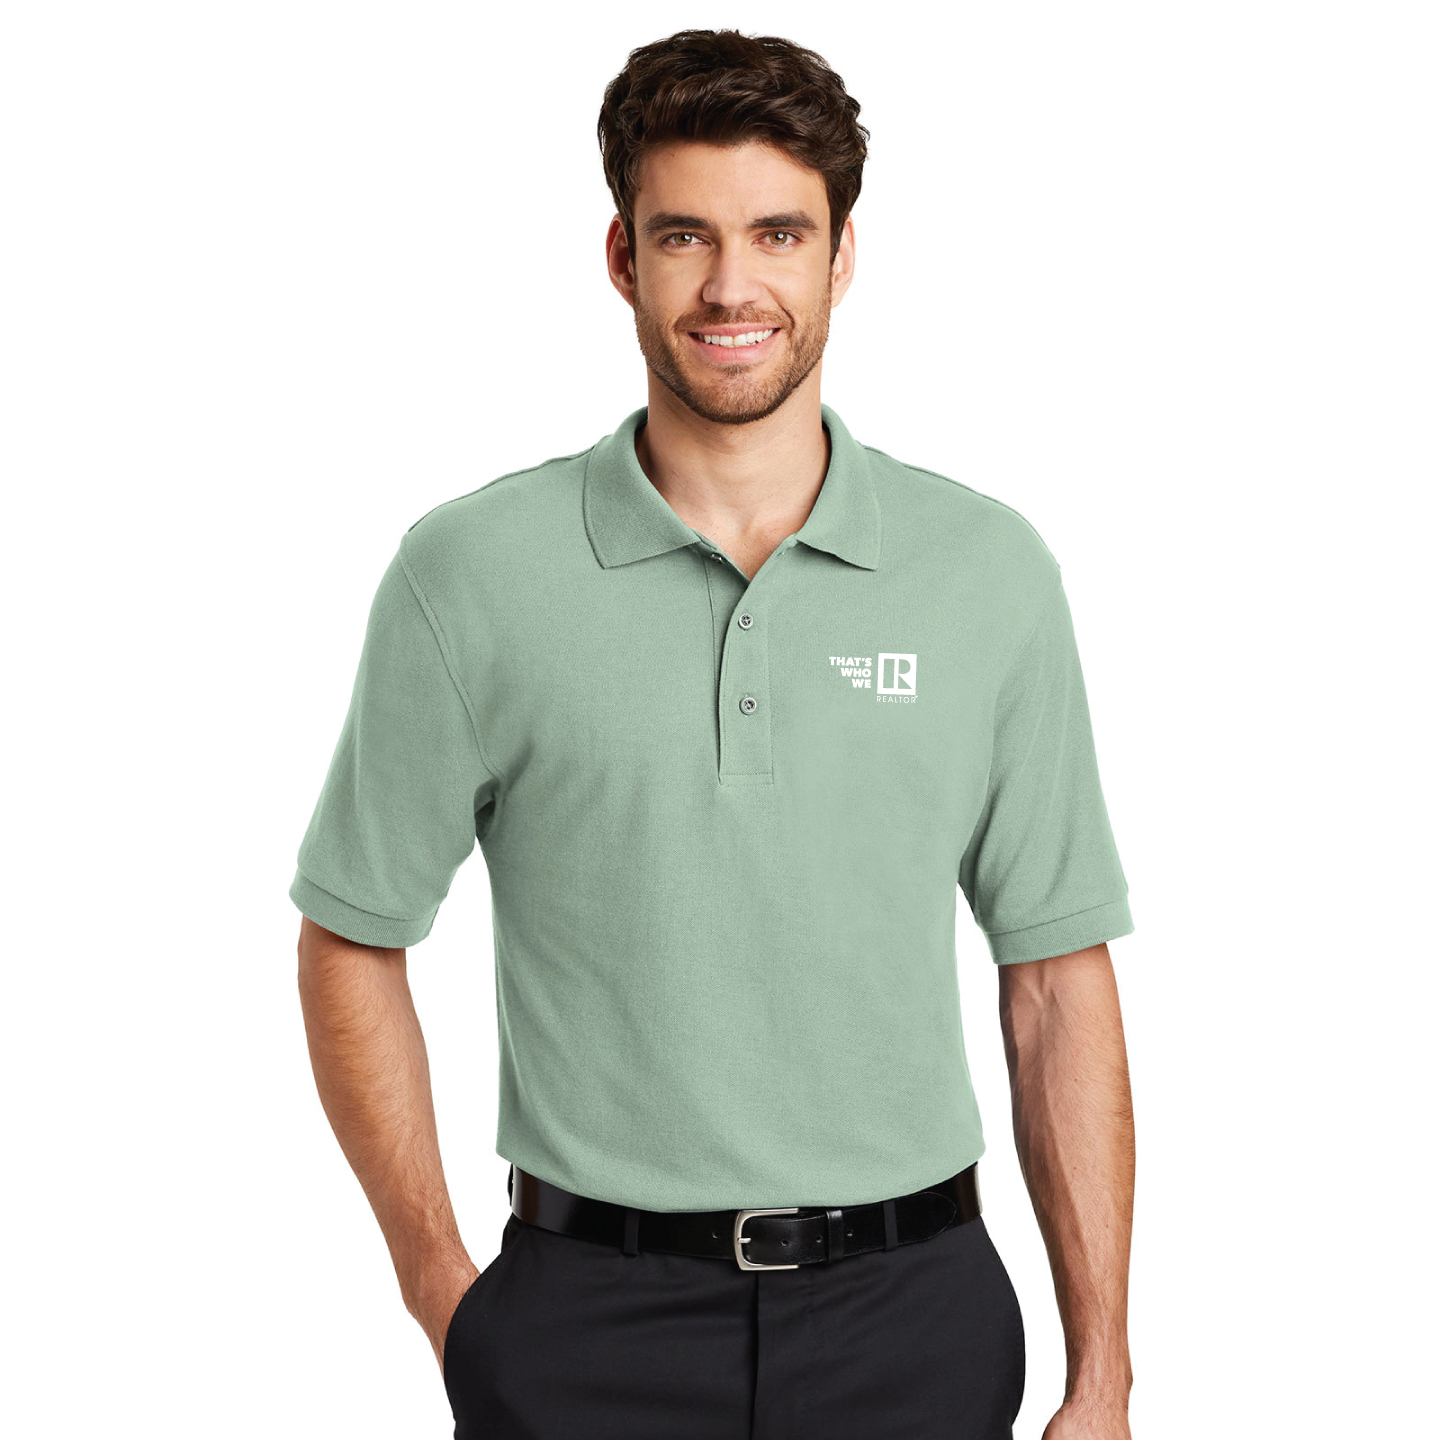 """That's Who We R"" Mens Pique Polo Shirt - TCG1110"